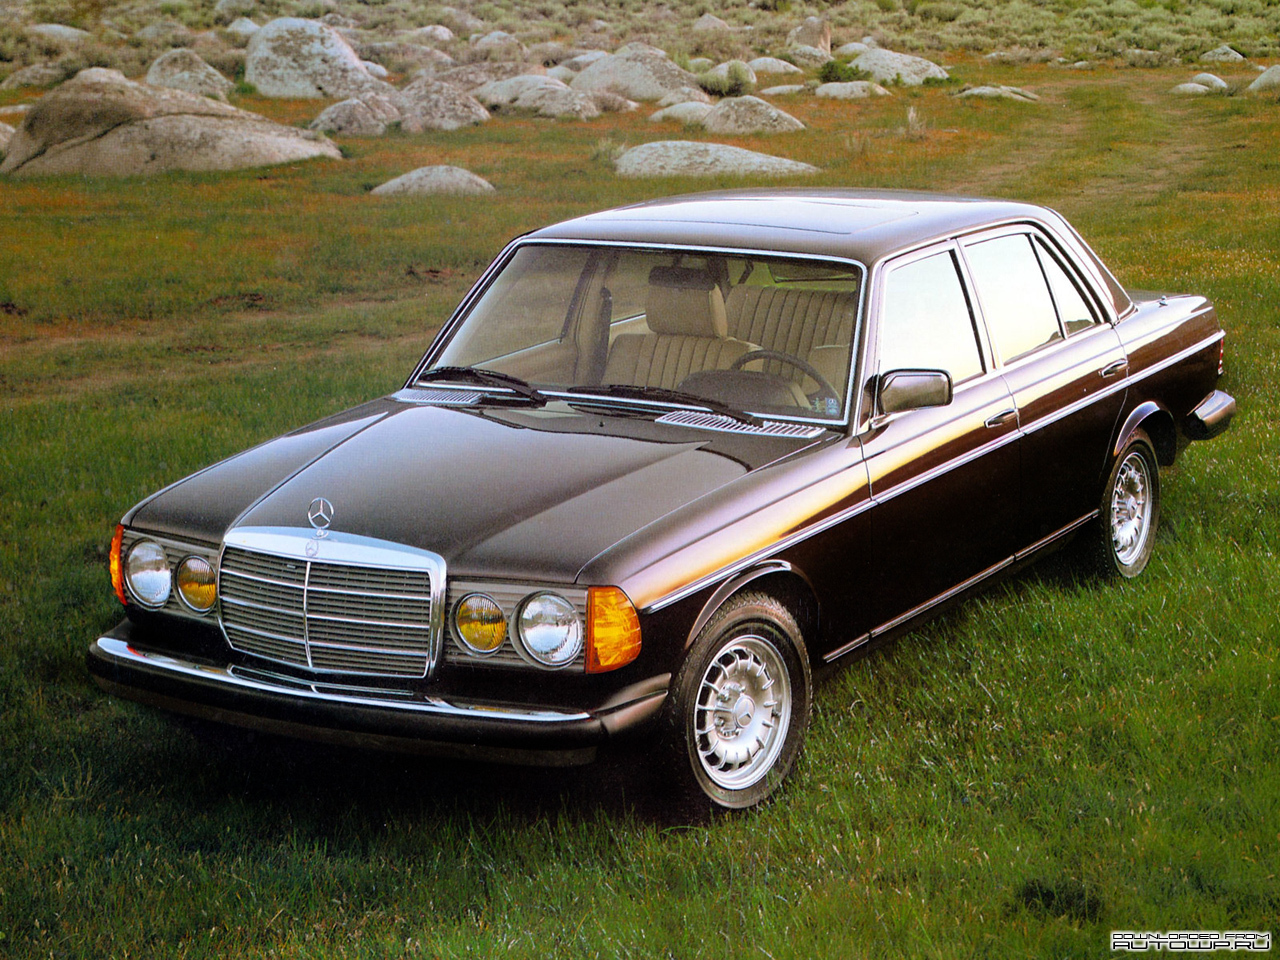 Mercedes Benz E Class W123 Photos Photogallery With 38 Pics Carsbase Com